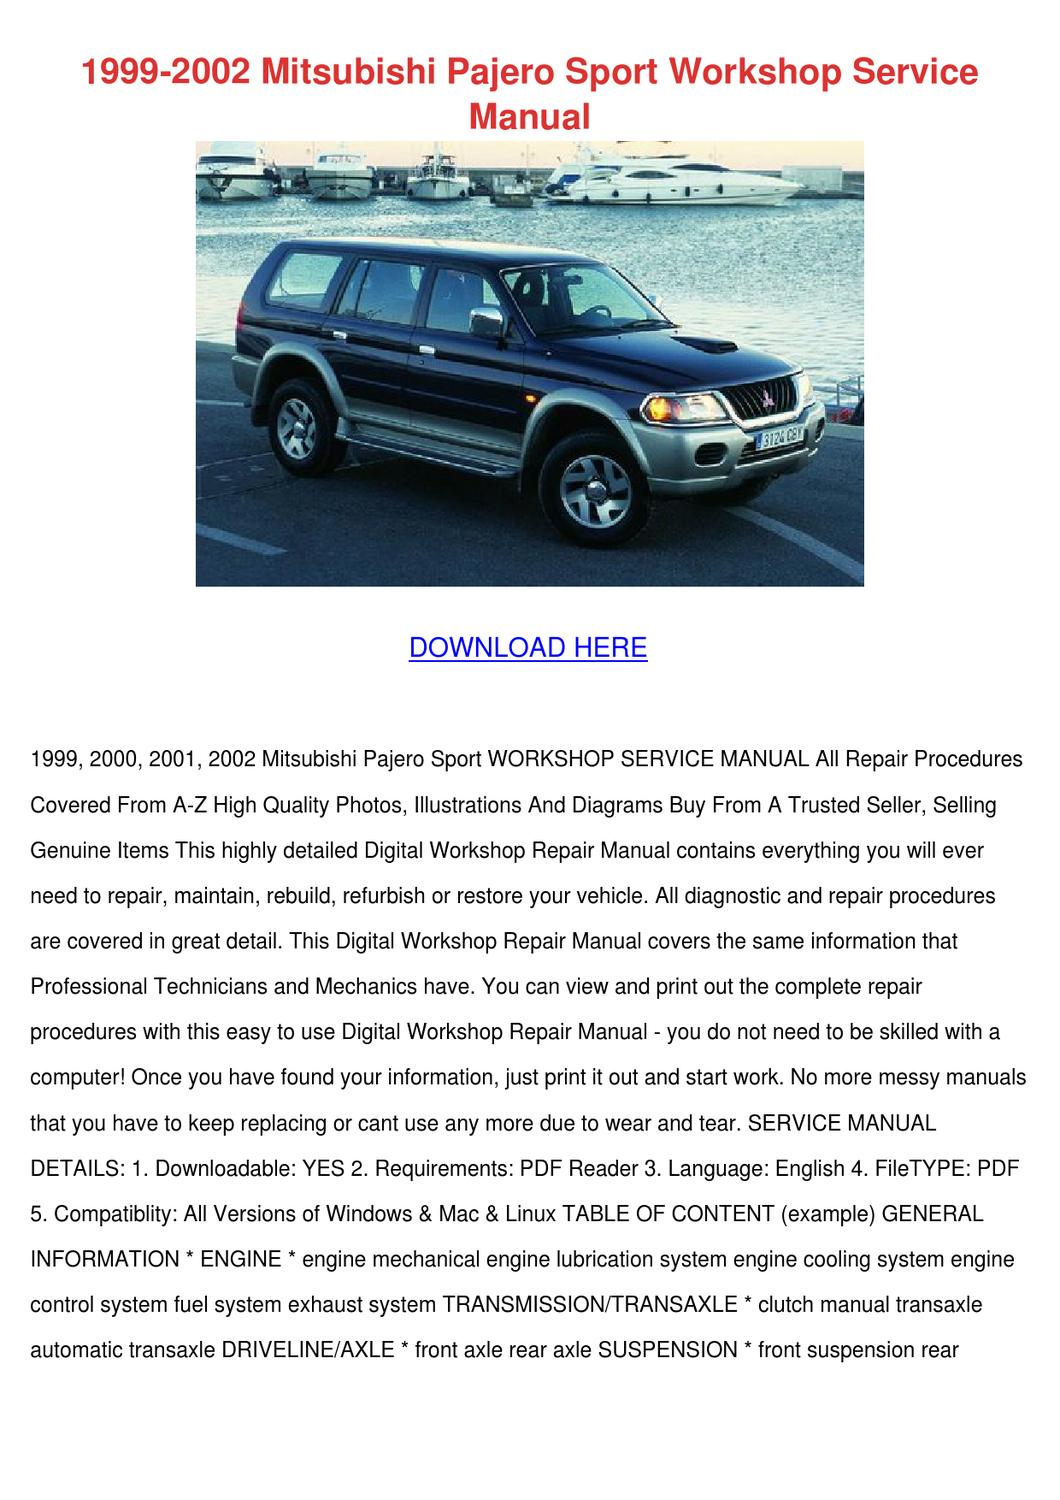 1999 2002 Mitsubishi Pajero Sport Workshop Se by Adelaide Guercio - issuu